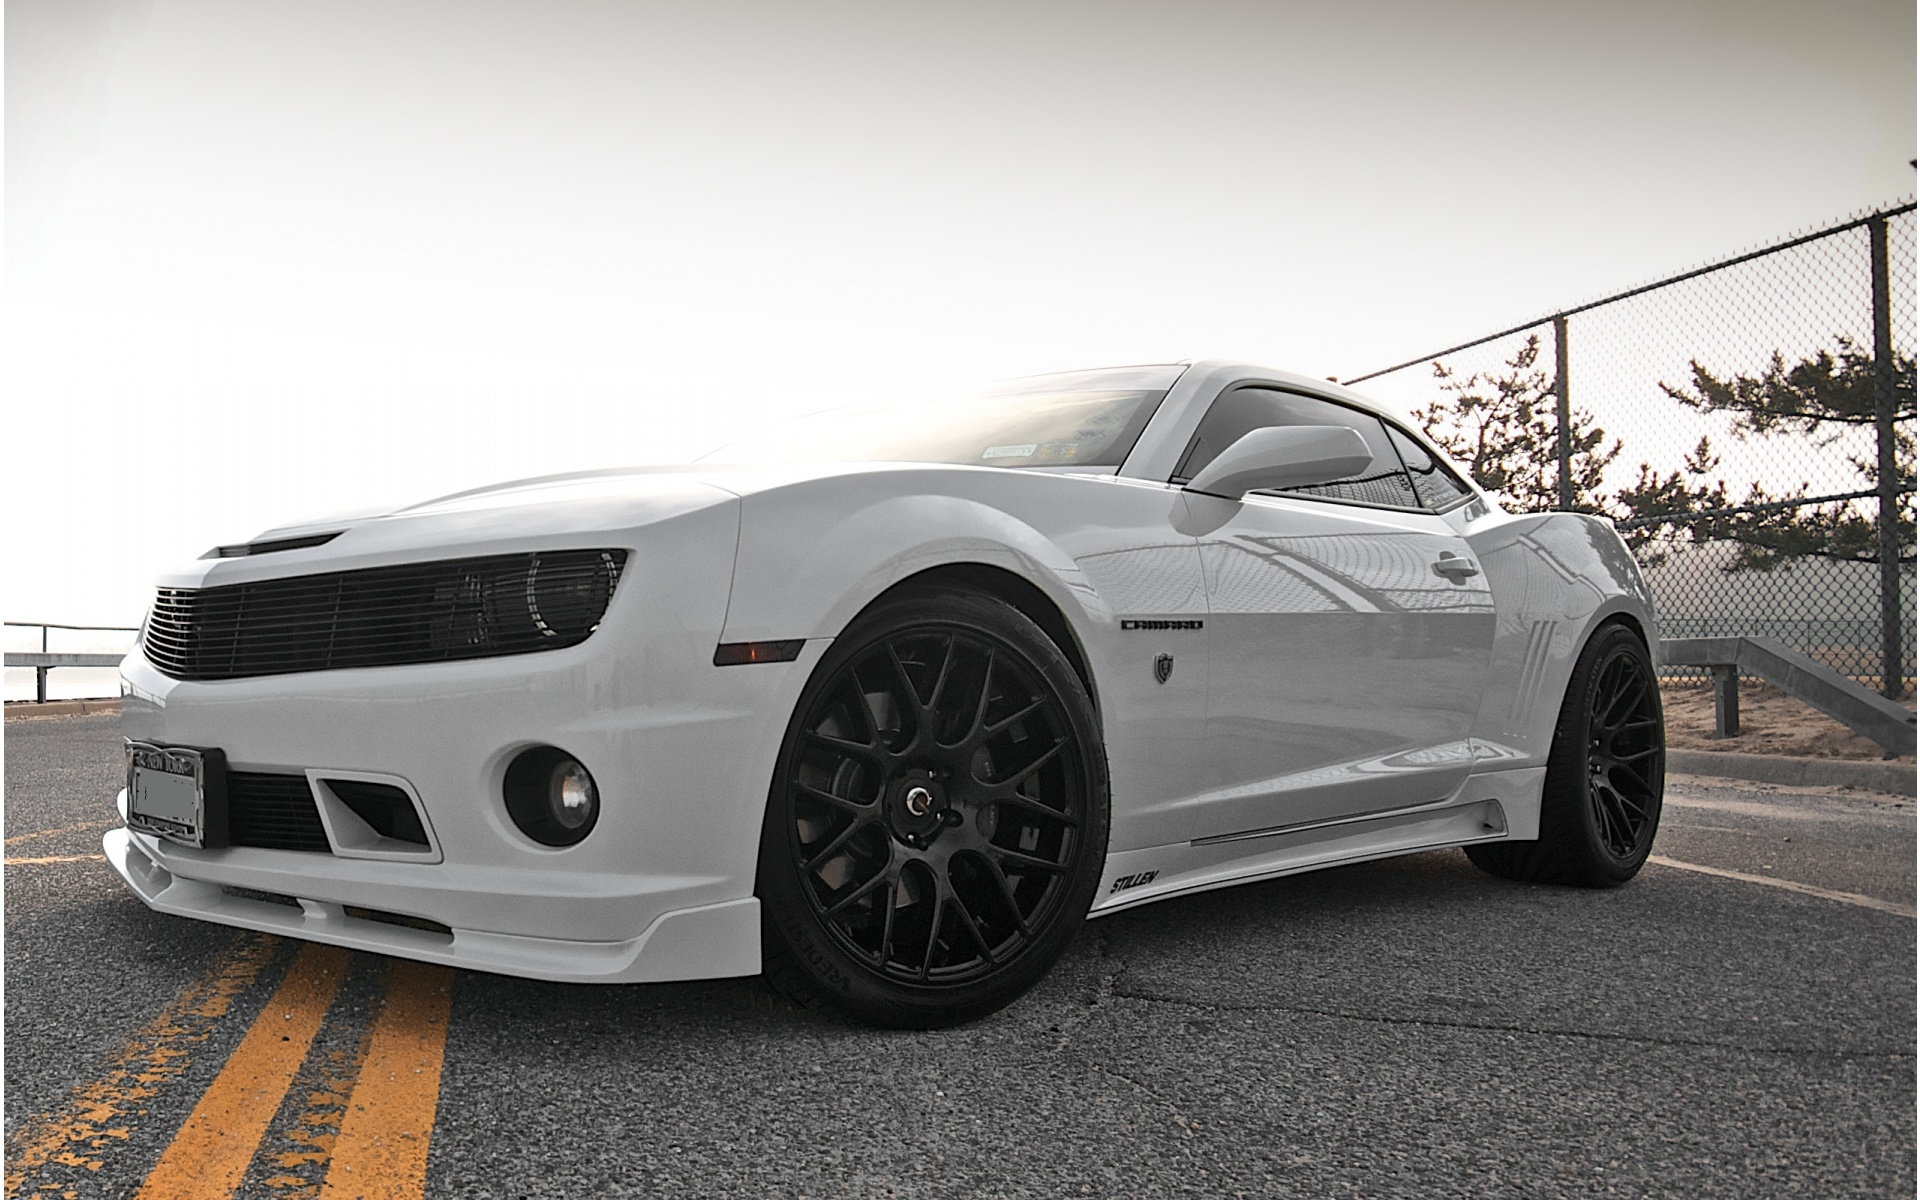 white on black camaro ss wallpapers 1920x1200 715712. Cars Review. Best American Auto & Cars Review